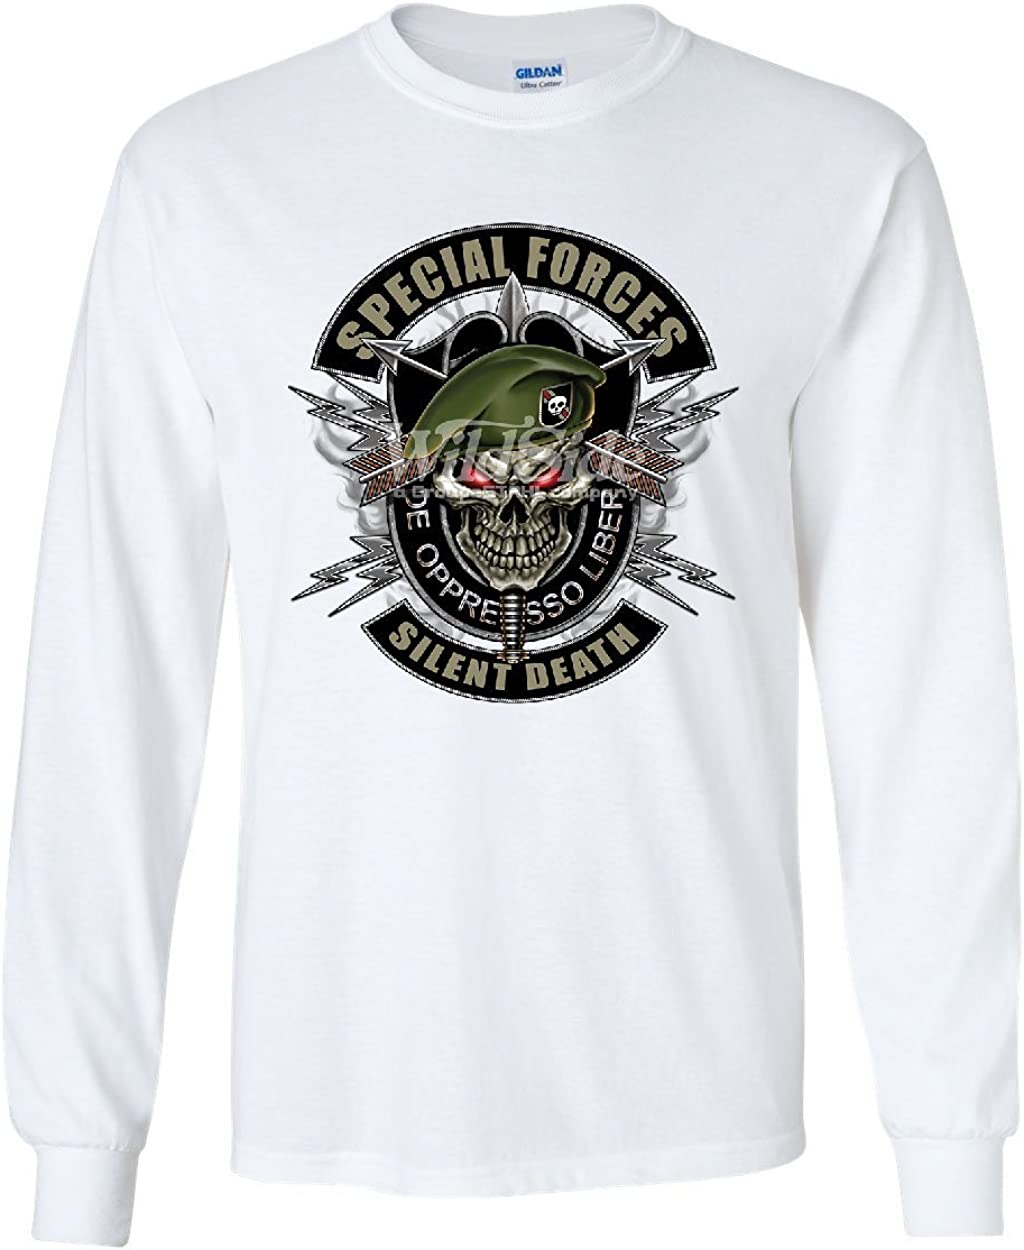 Tee Hunt Special Forces Womens Sweatshirt Army Silent Death Green Berets Skull